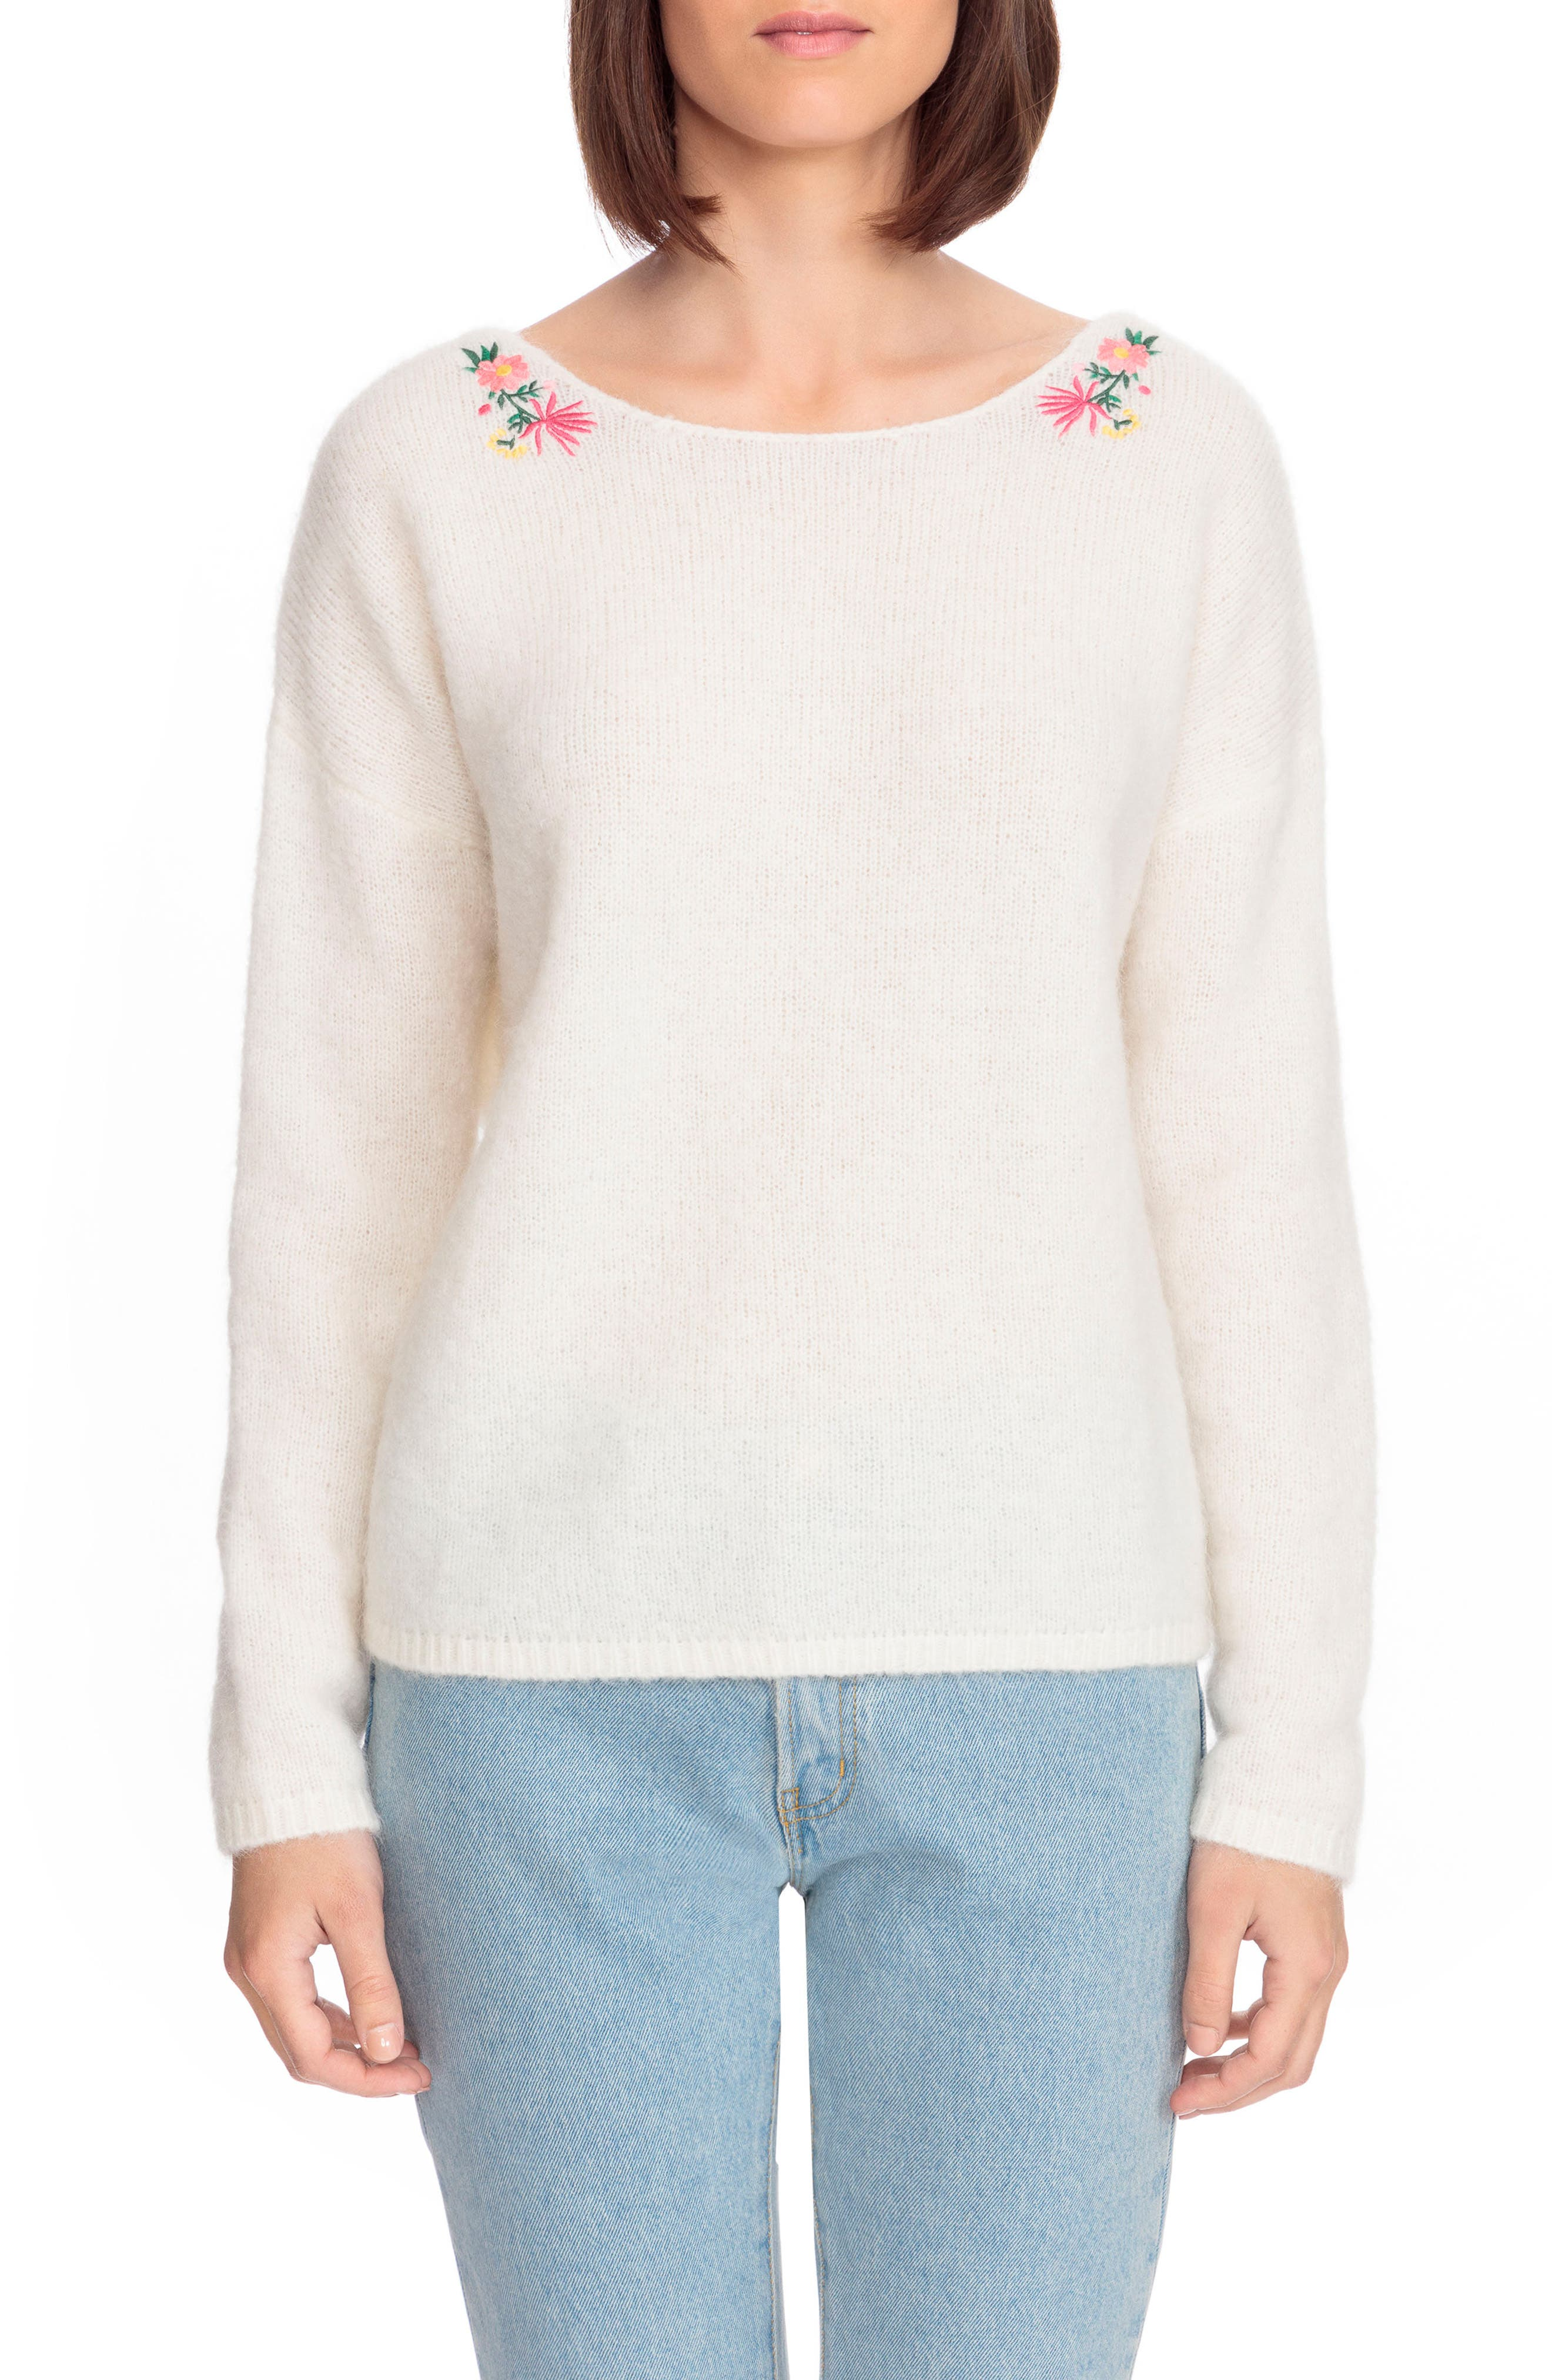 Cassiopee Embroidered Sweater,                             Main thumbnail 1, color,                             100